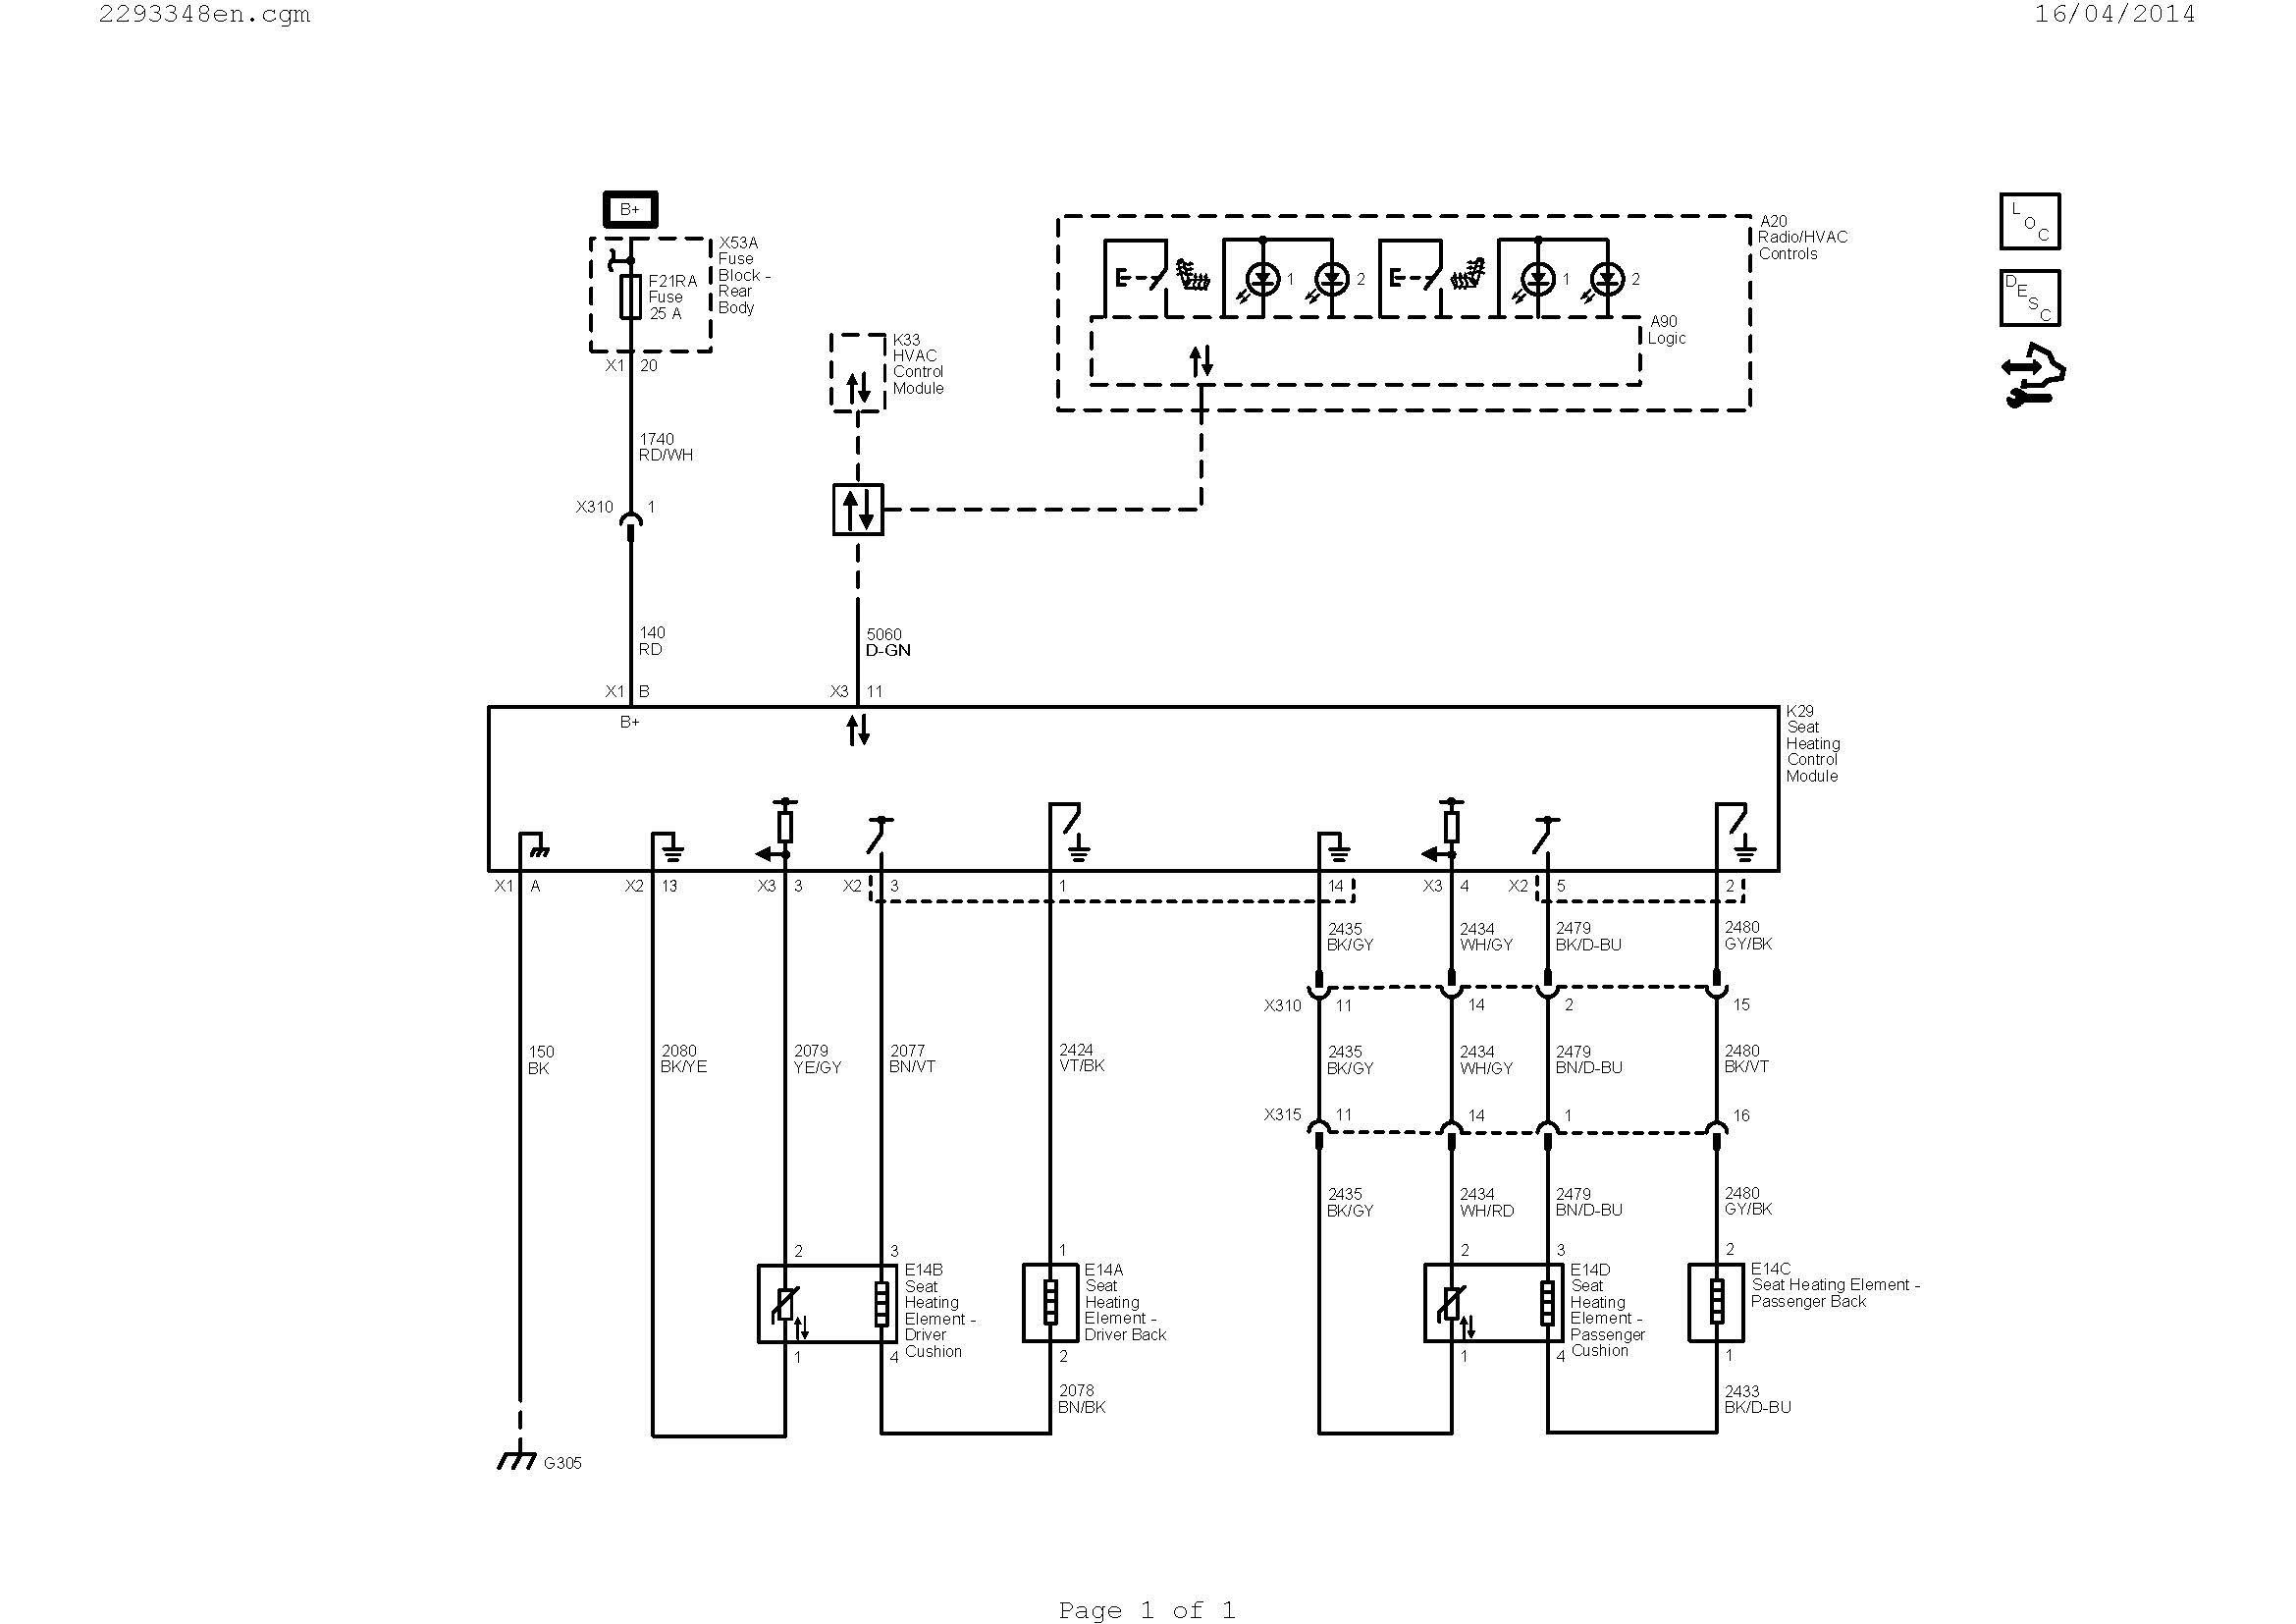 Commercial Hvac Wiring - Wiring Diagram - Y Plan Wiring Diagram For Nest